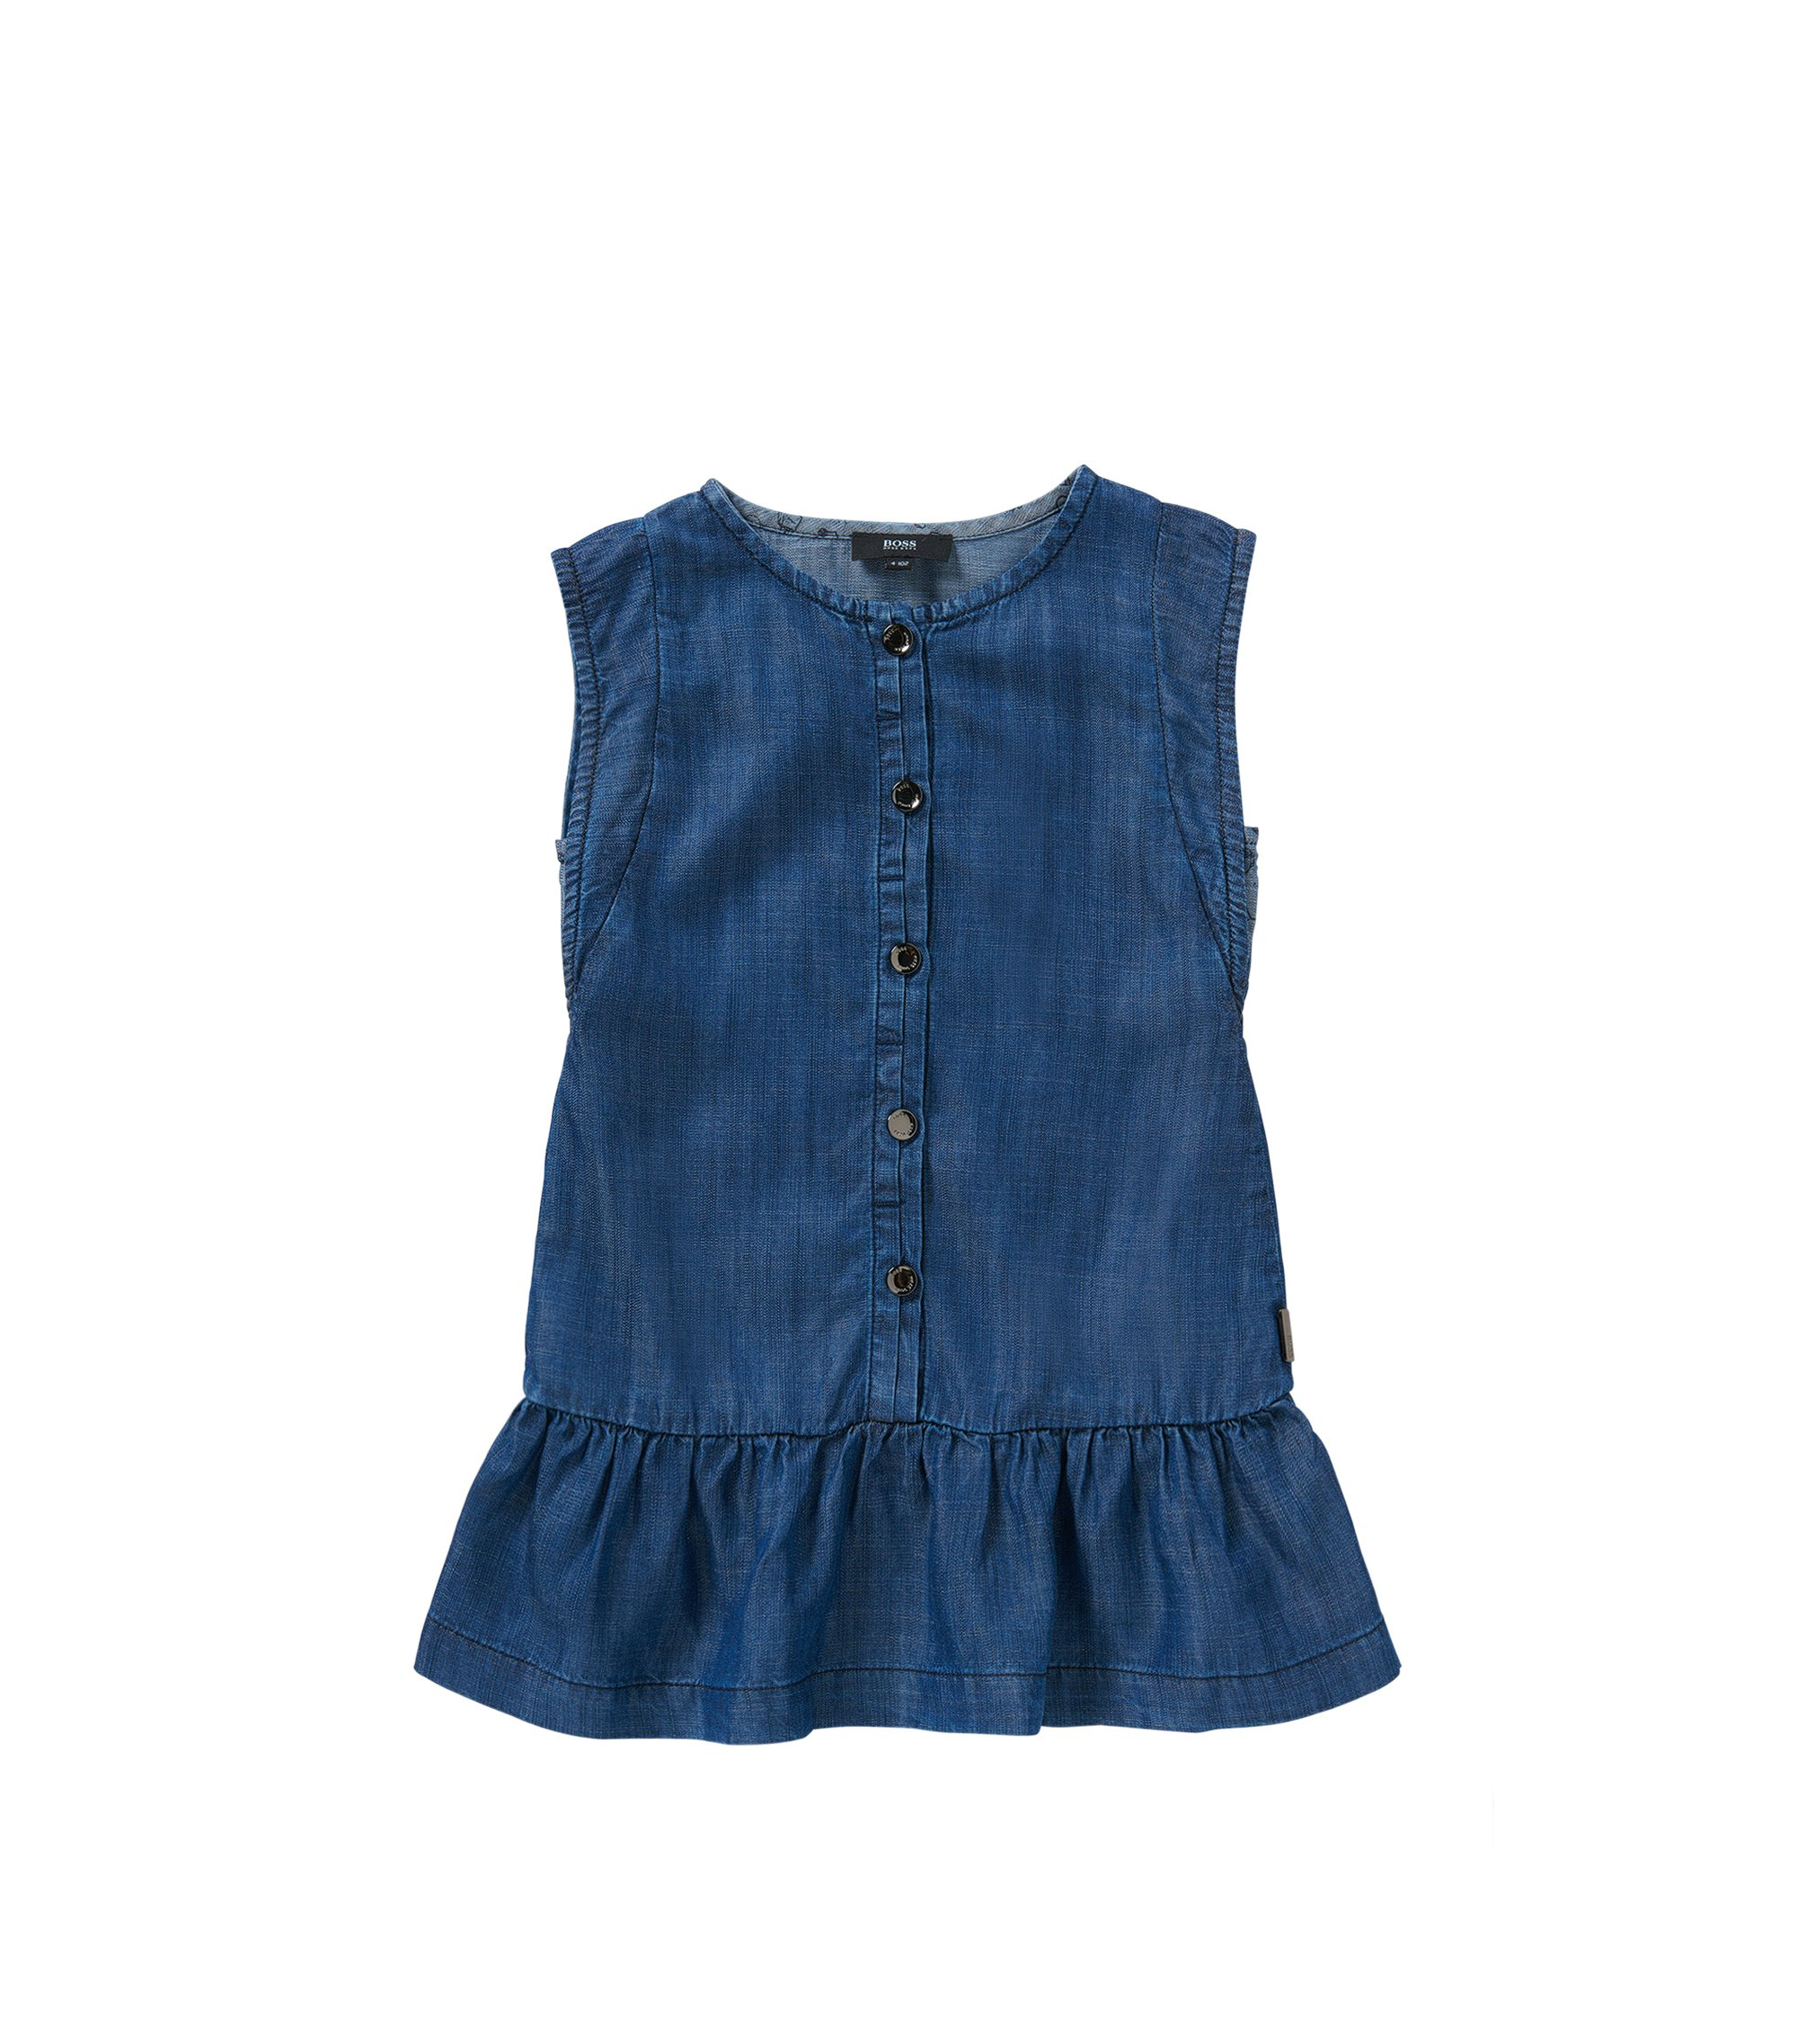 Kids-Kleid im Denim-Look : 'J12149', Dunkelblau